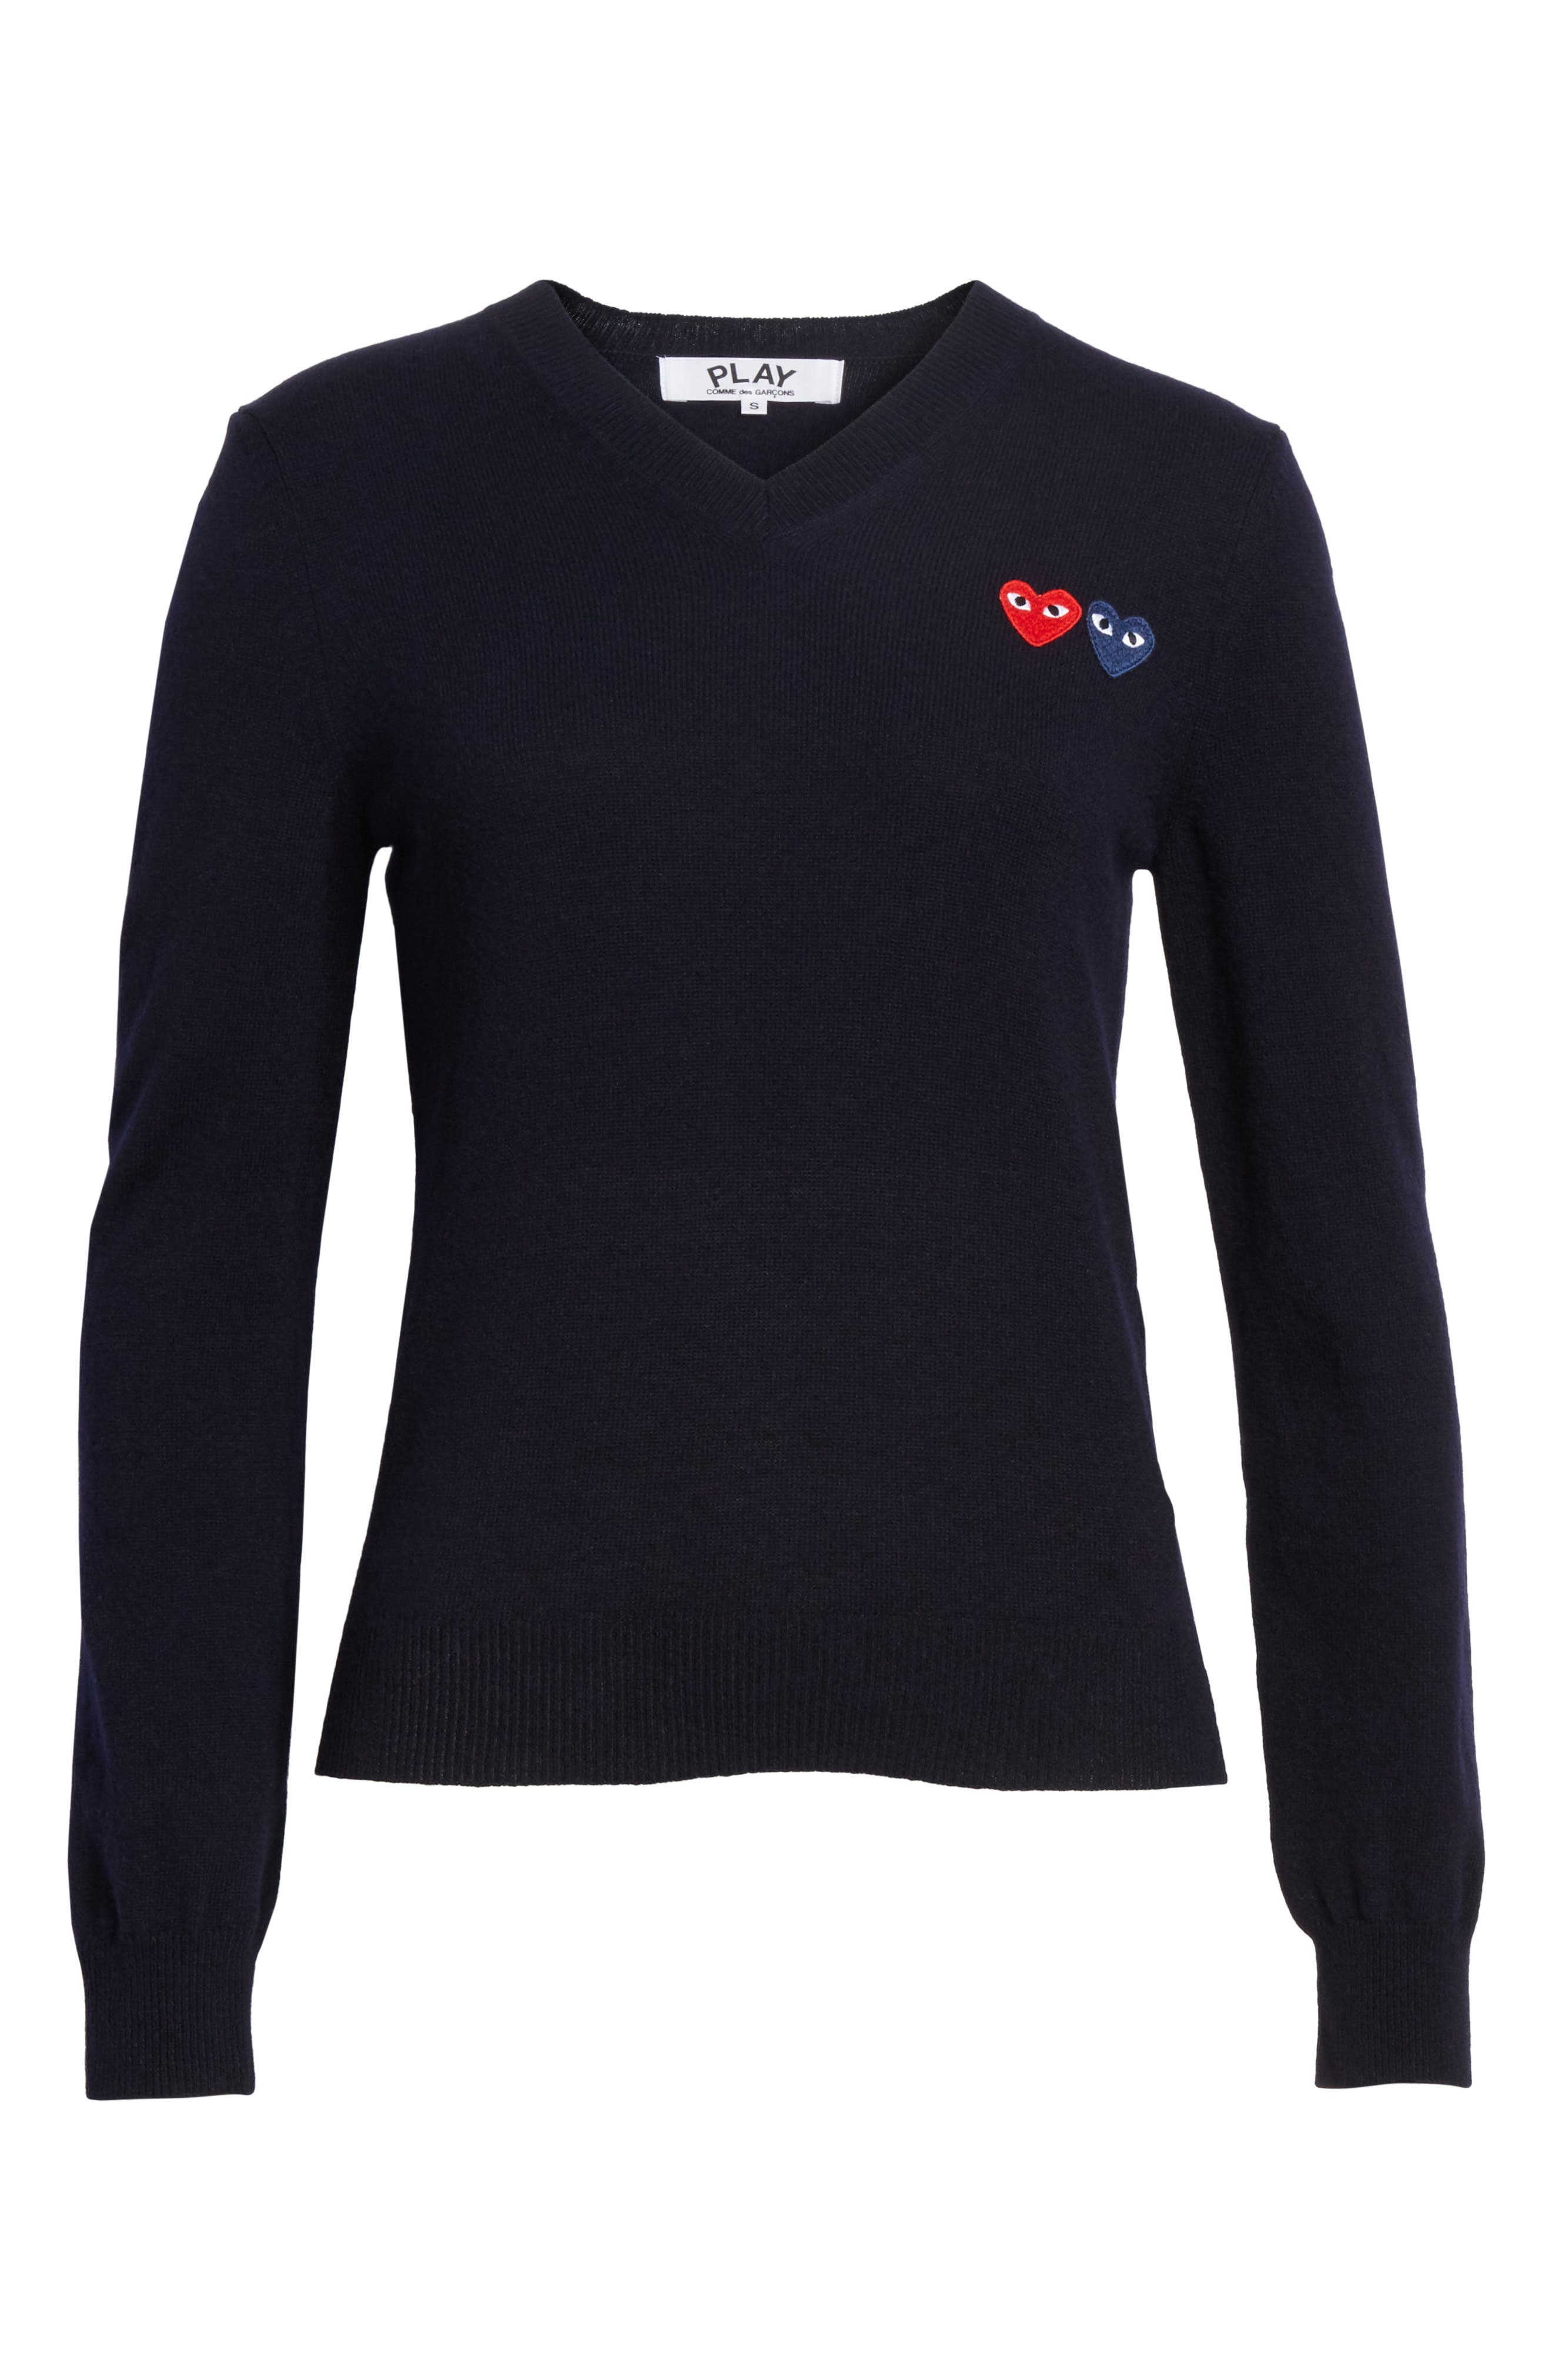 PLAY Double Heart Wool Sweater,                             Alternate thumbnail 6, color,